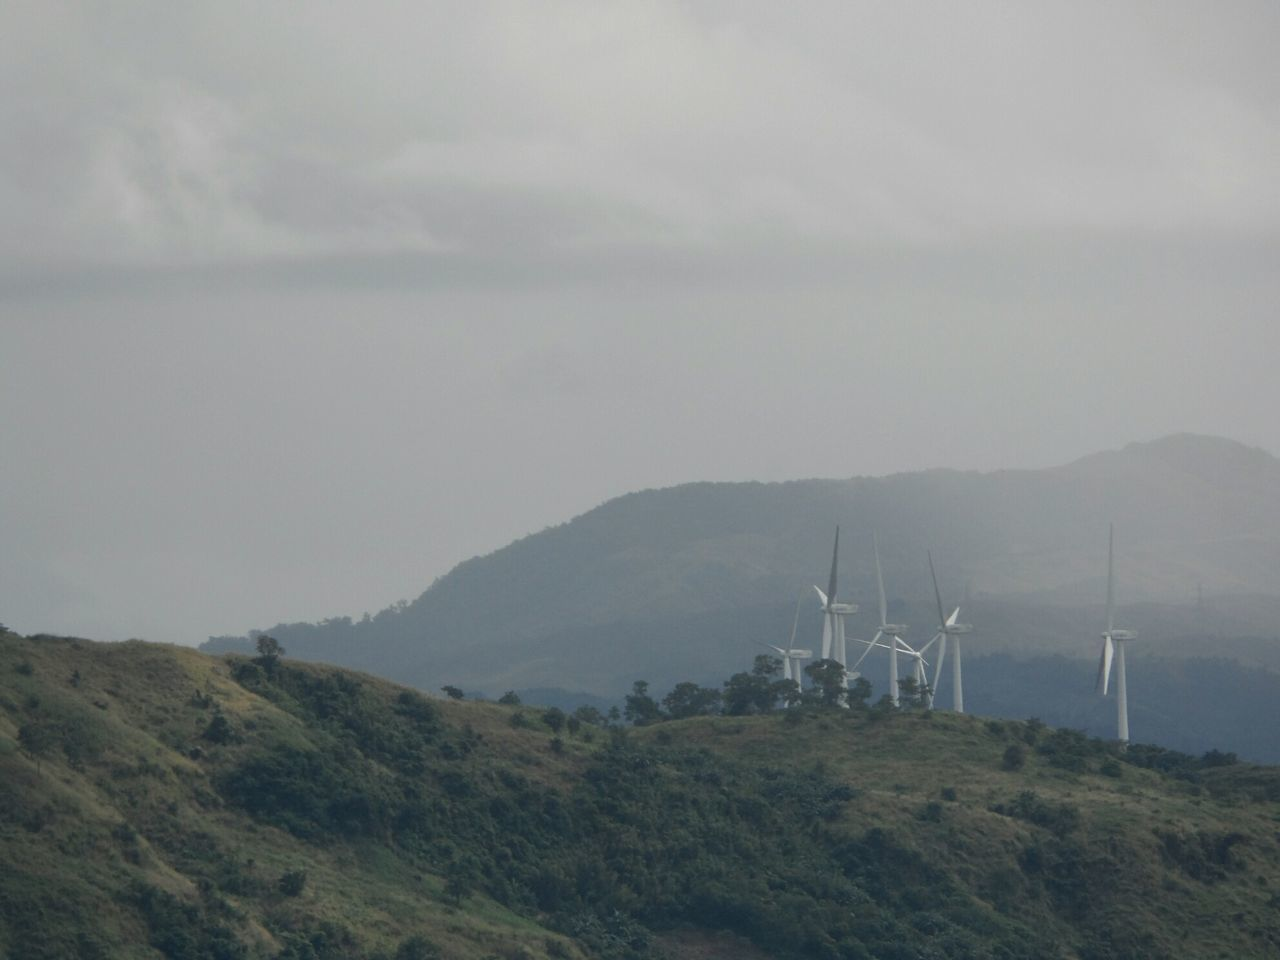 wind turbine, wind power, mountain, alternative energy, renewable energy, fuel and power generation, environmental conservation, nature, no people, landscape, windmill, mountain range, tranquil scene, day, beauty in nature, sky, tranquility, industrial windmill, outdoors, scenics, technology